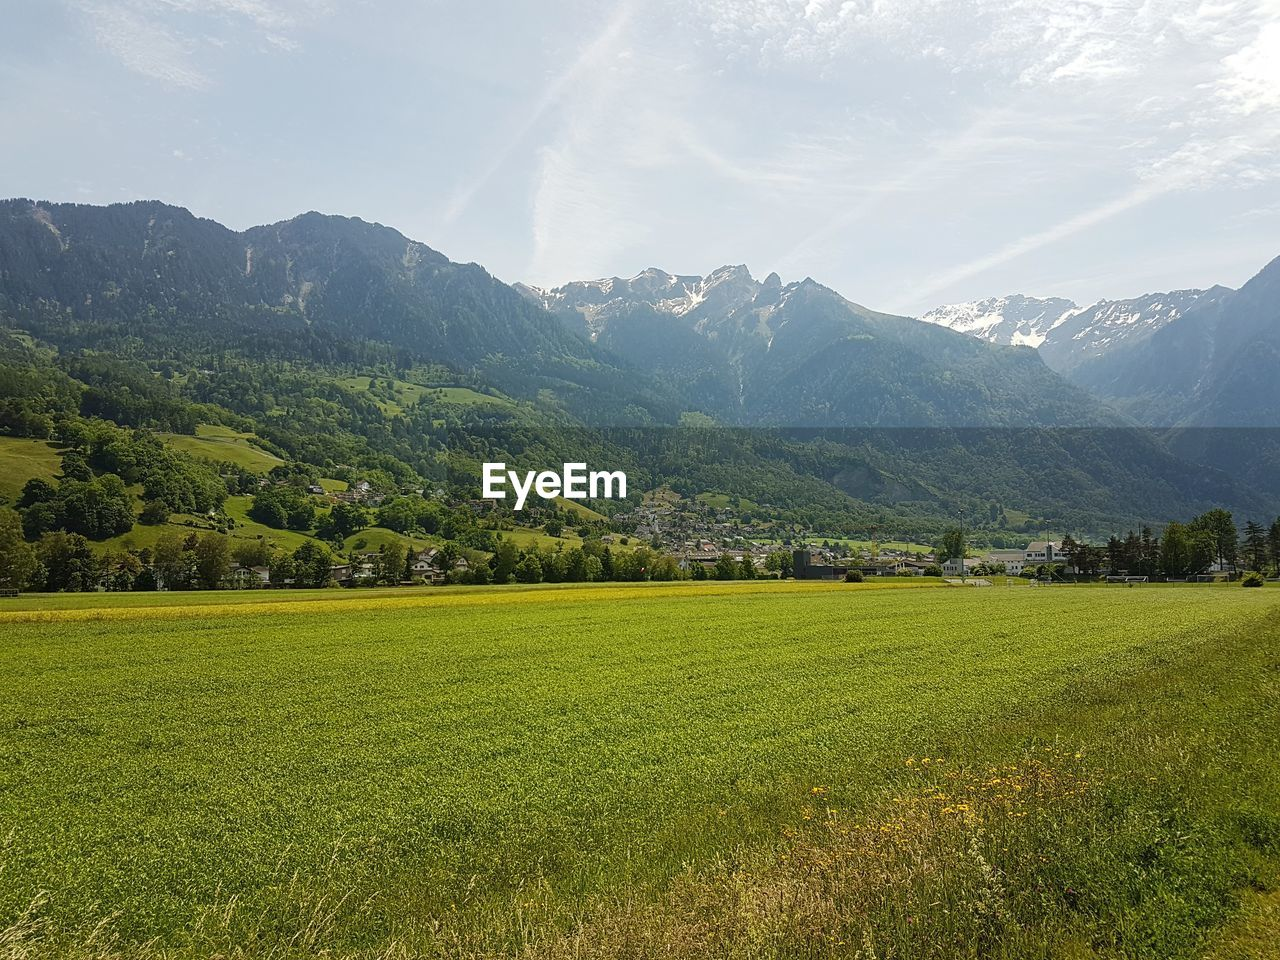 scenics - nature, mountain, beauty in nature, landscape, environment, plant, sky, green color, tranquil scene, tranquility, land, grass, tree, field, growth, mountain range, nature, day, rural scene, no people, outdoors